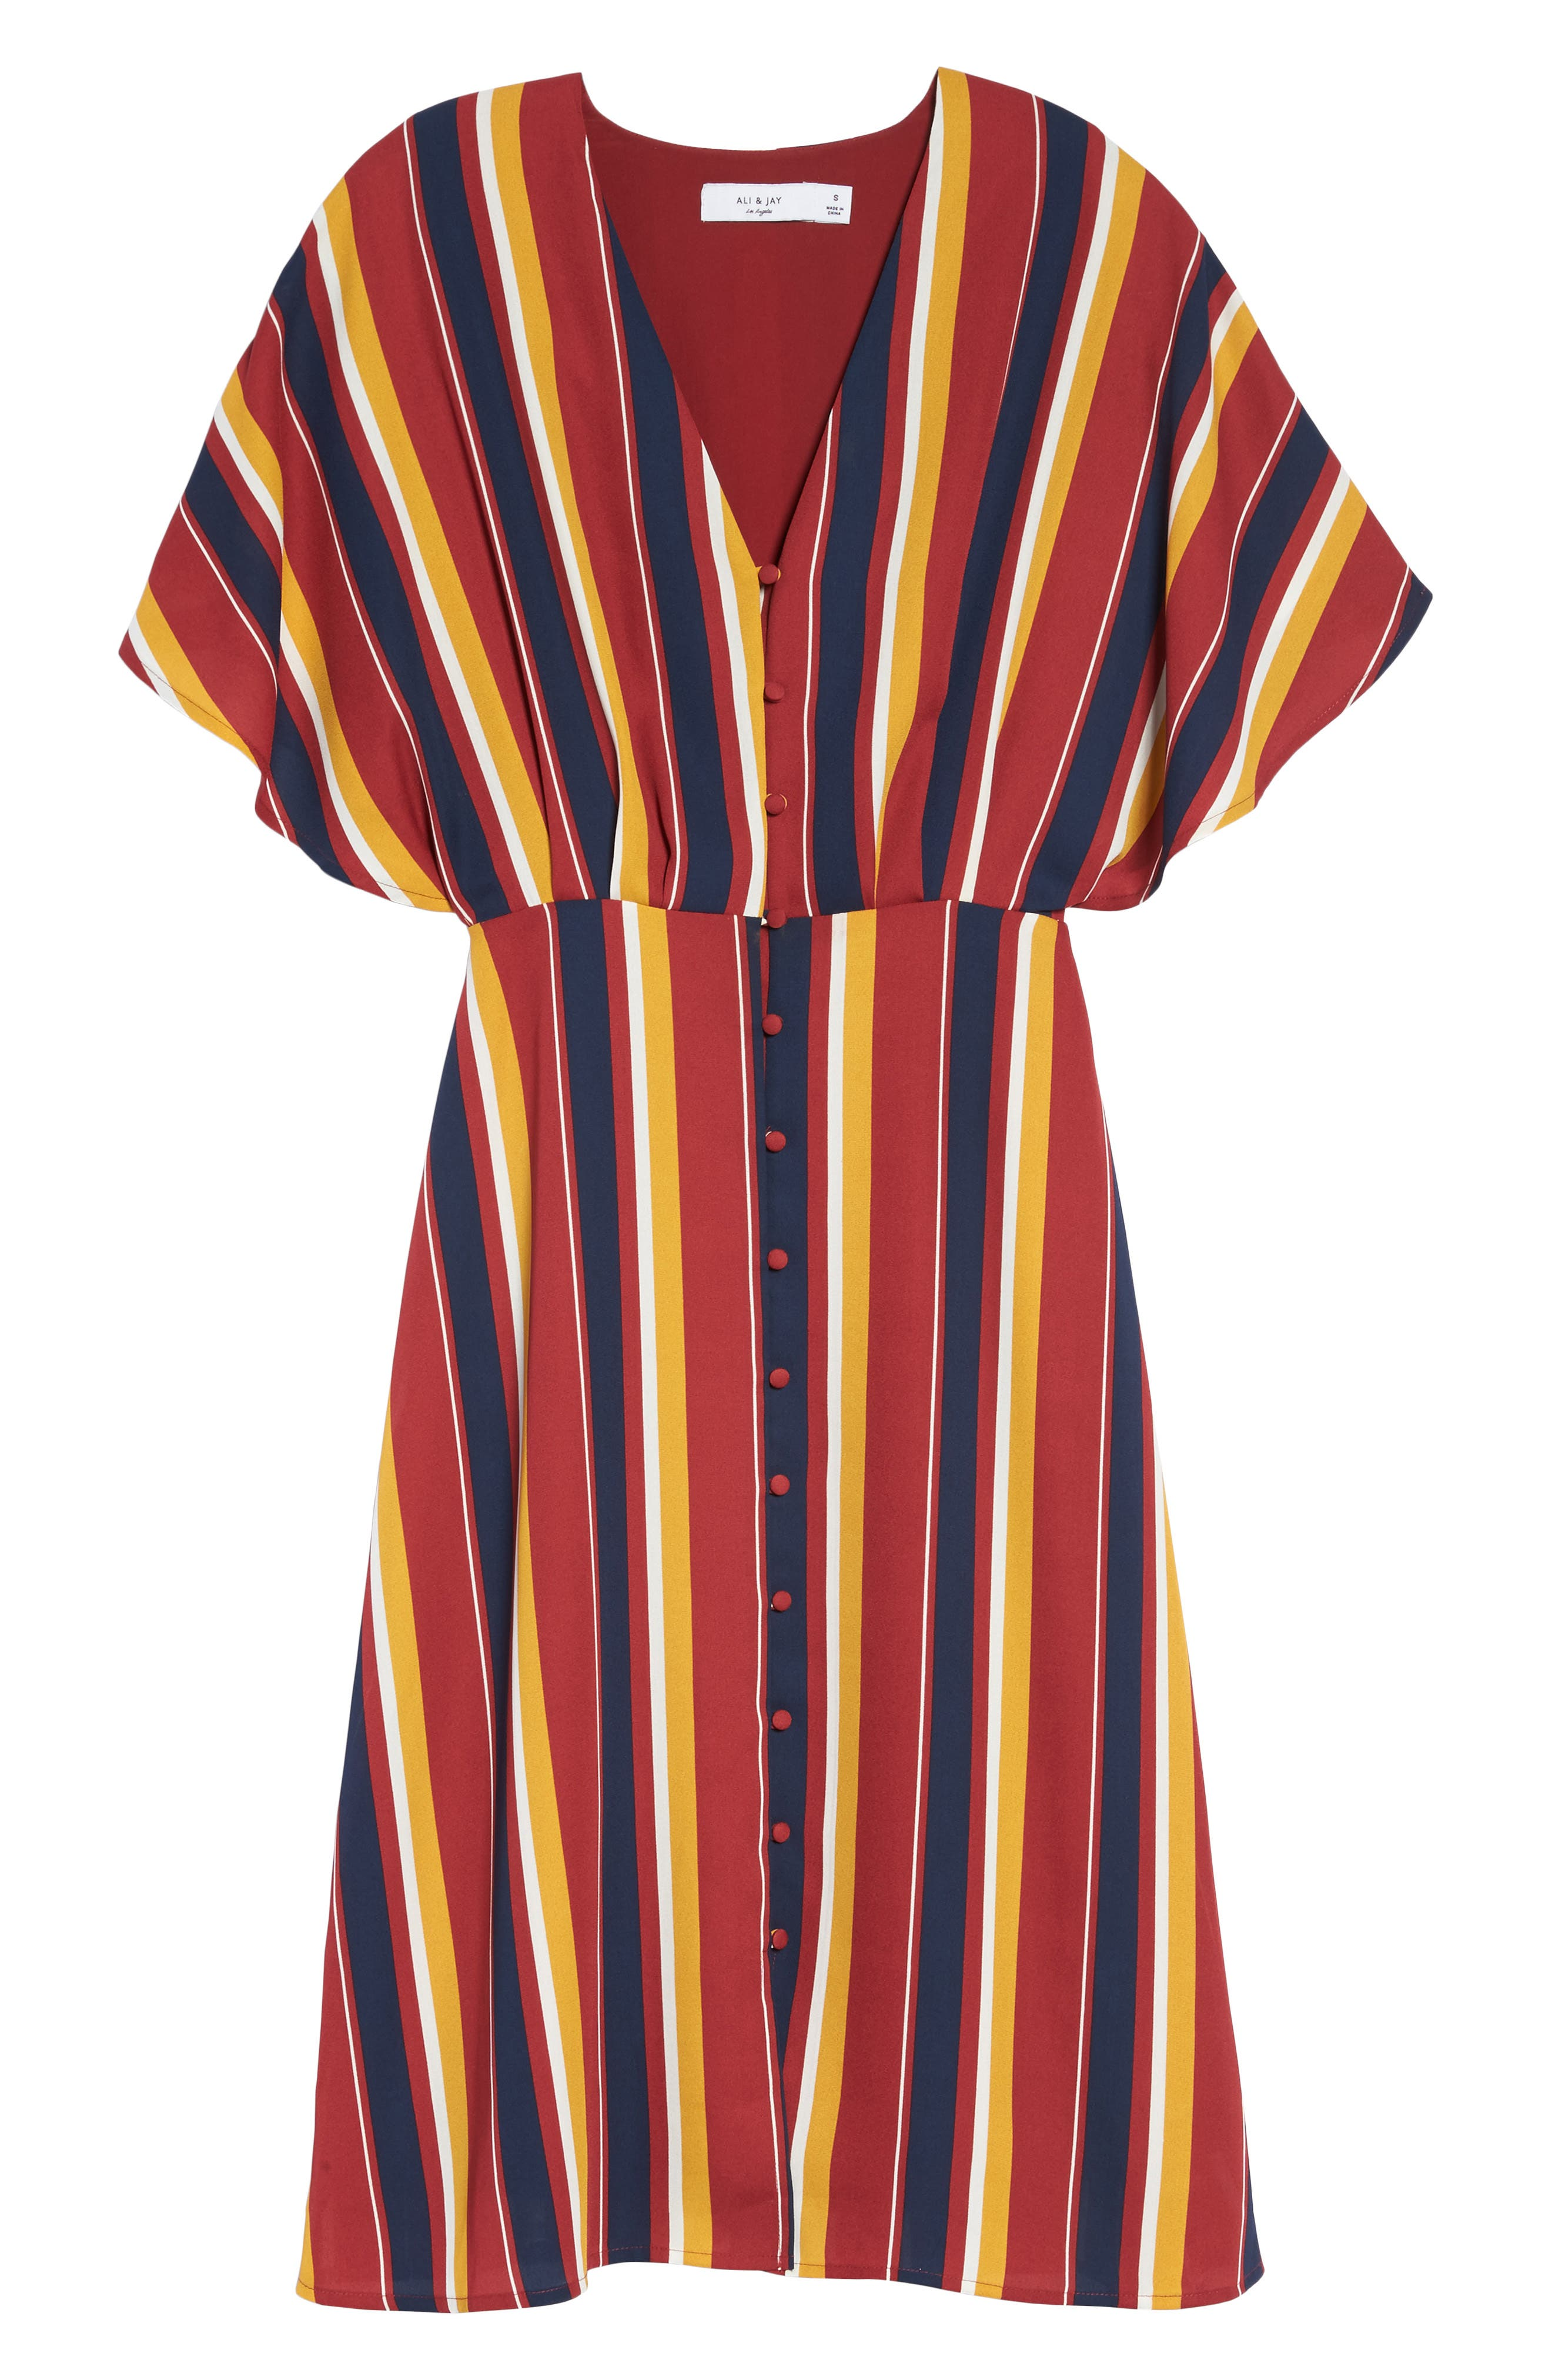 Dreamer Stripe Dress,                             Alternate thumbnail 6, color,                             646